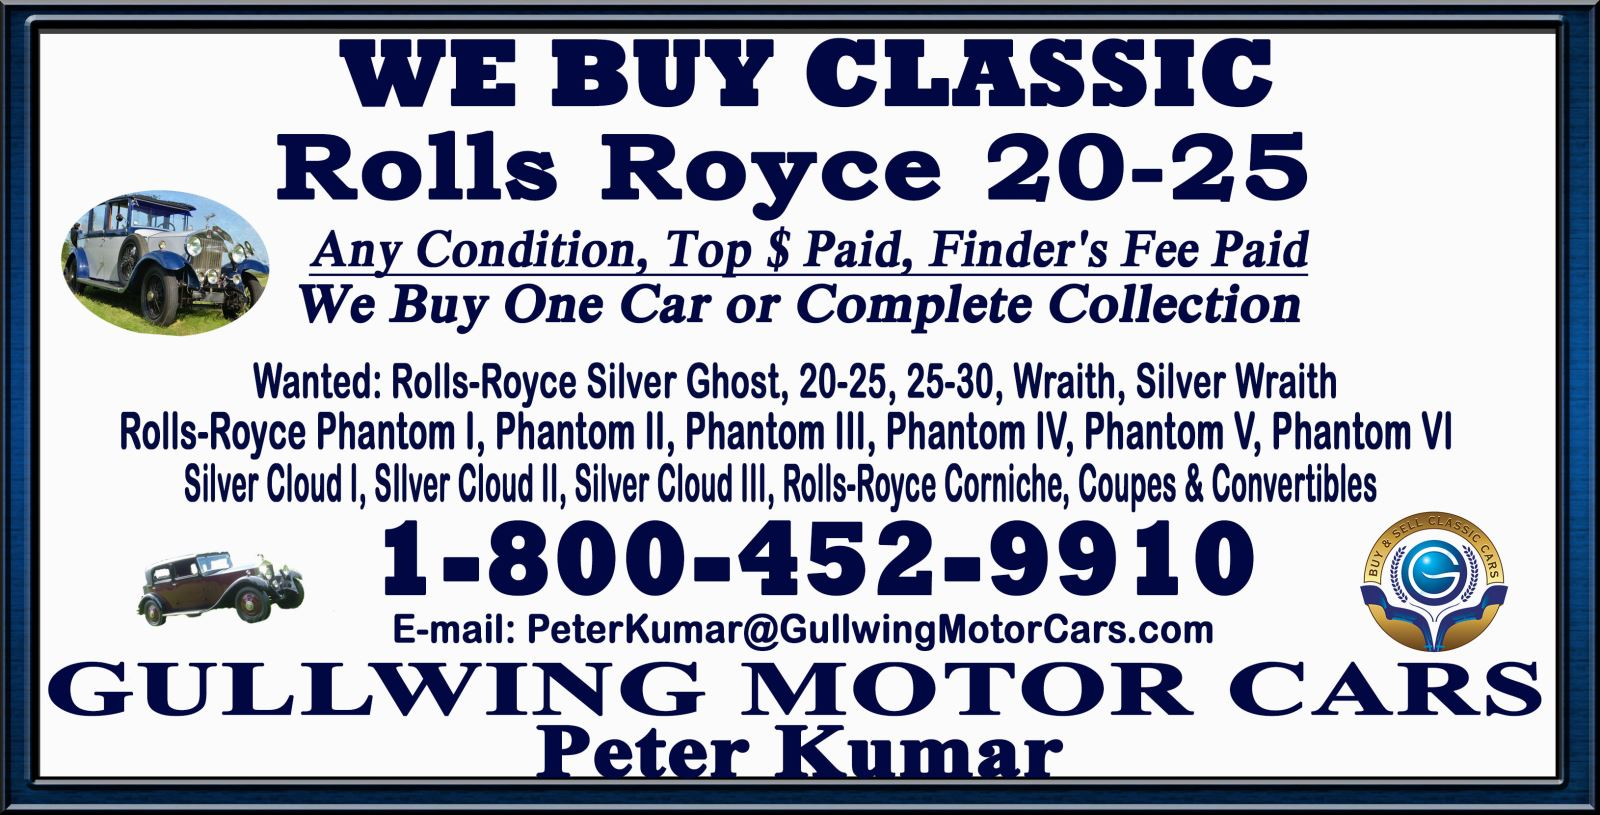 Sell Classic Rolls Royce 20/25 | Call Gullwing Motor if Vintage Rolls Royce 20/25 For Sale